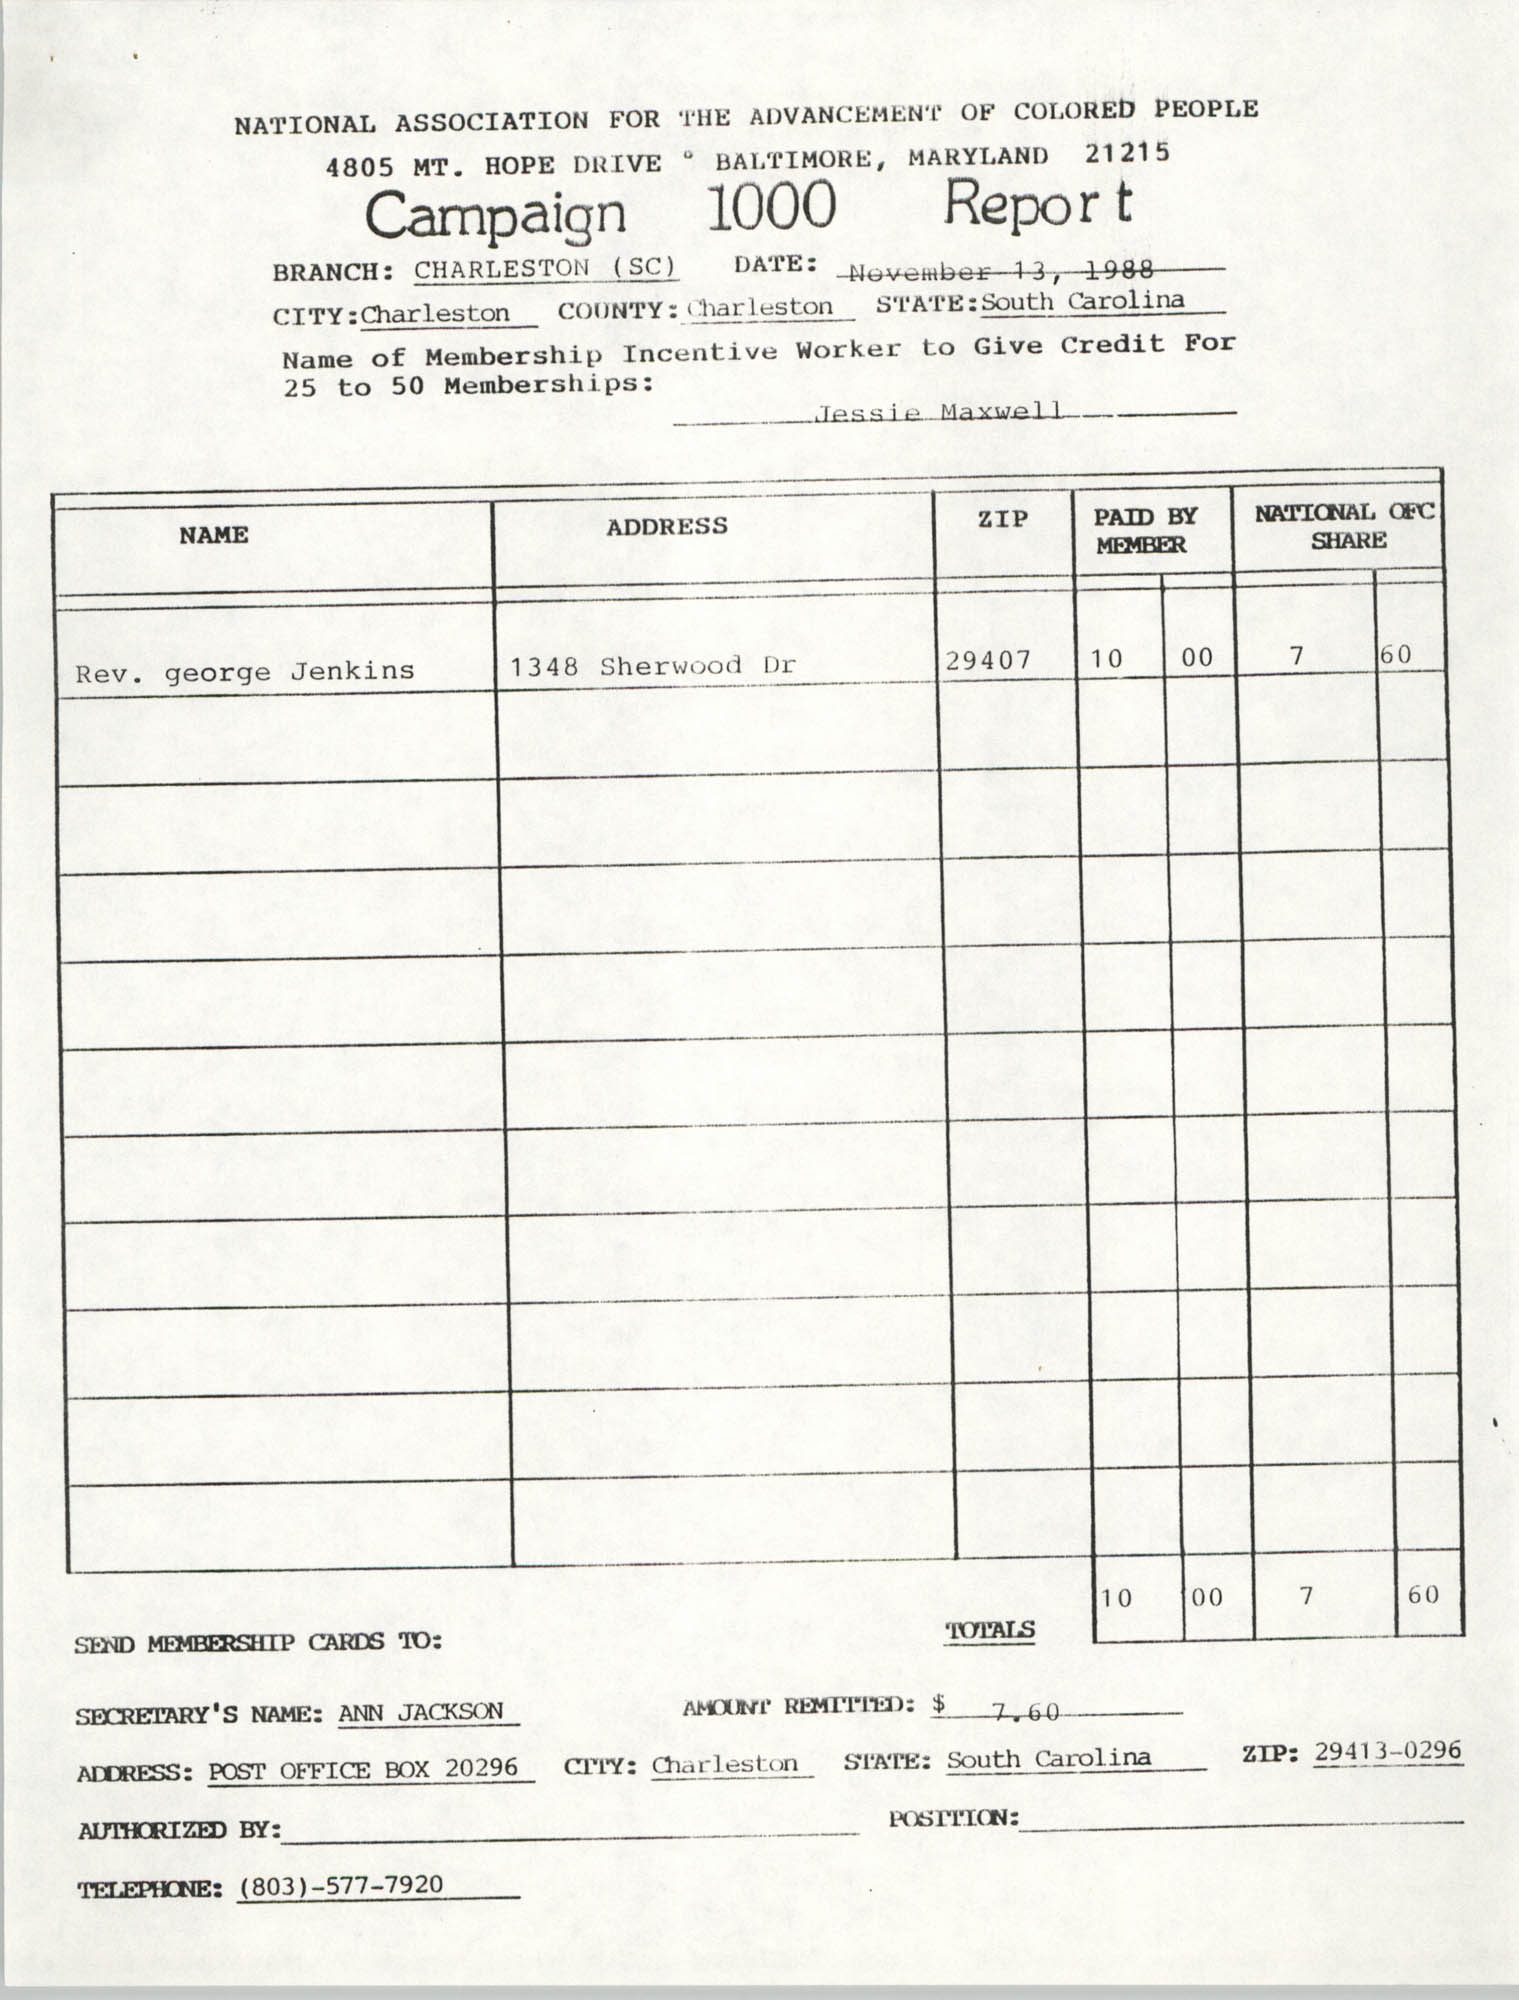 Campaign 1000 Report, Jessie Maxwell, Charleston Branch of the NAACP, November 13, 1988